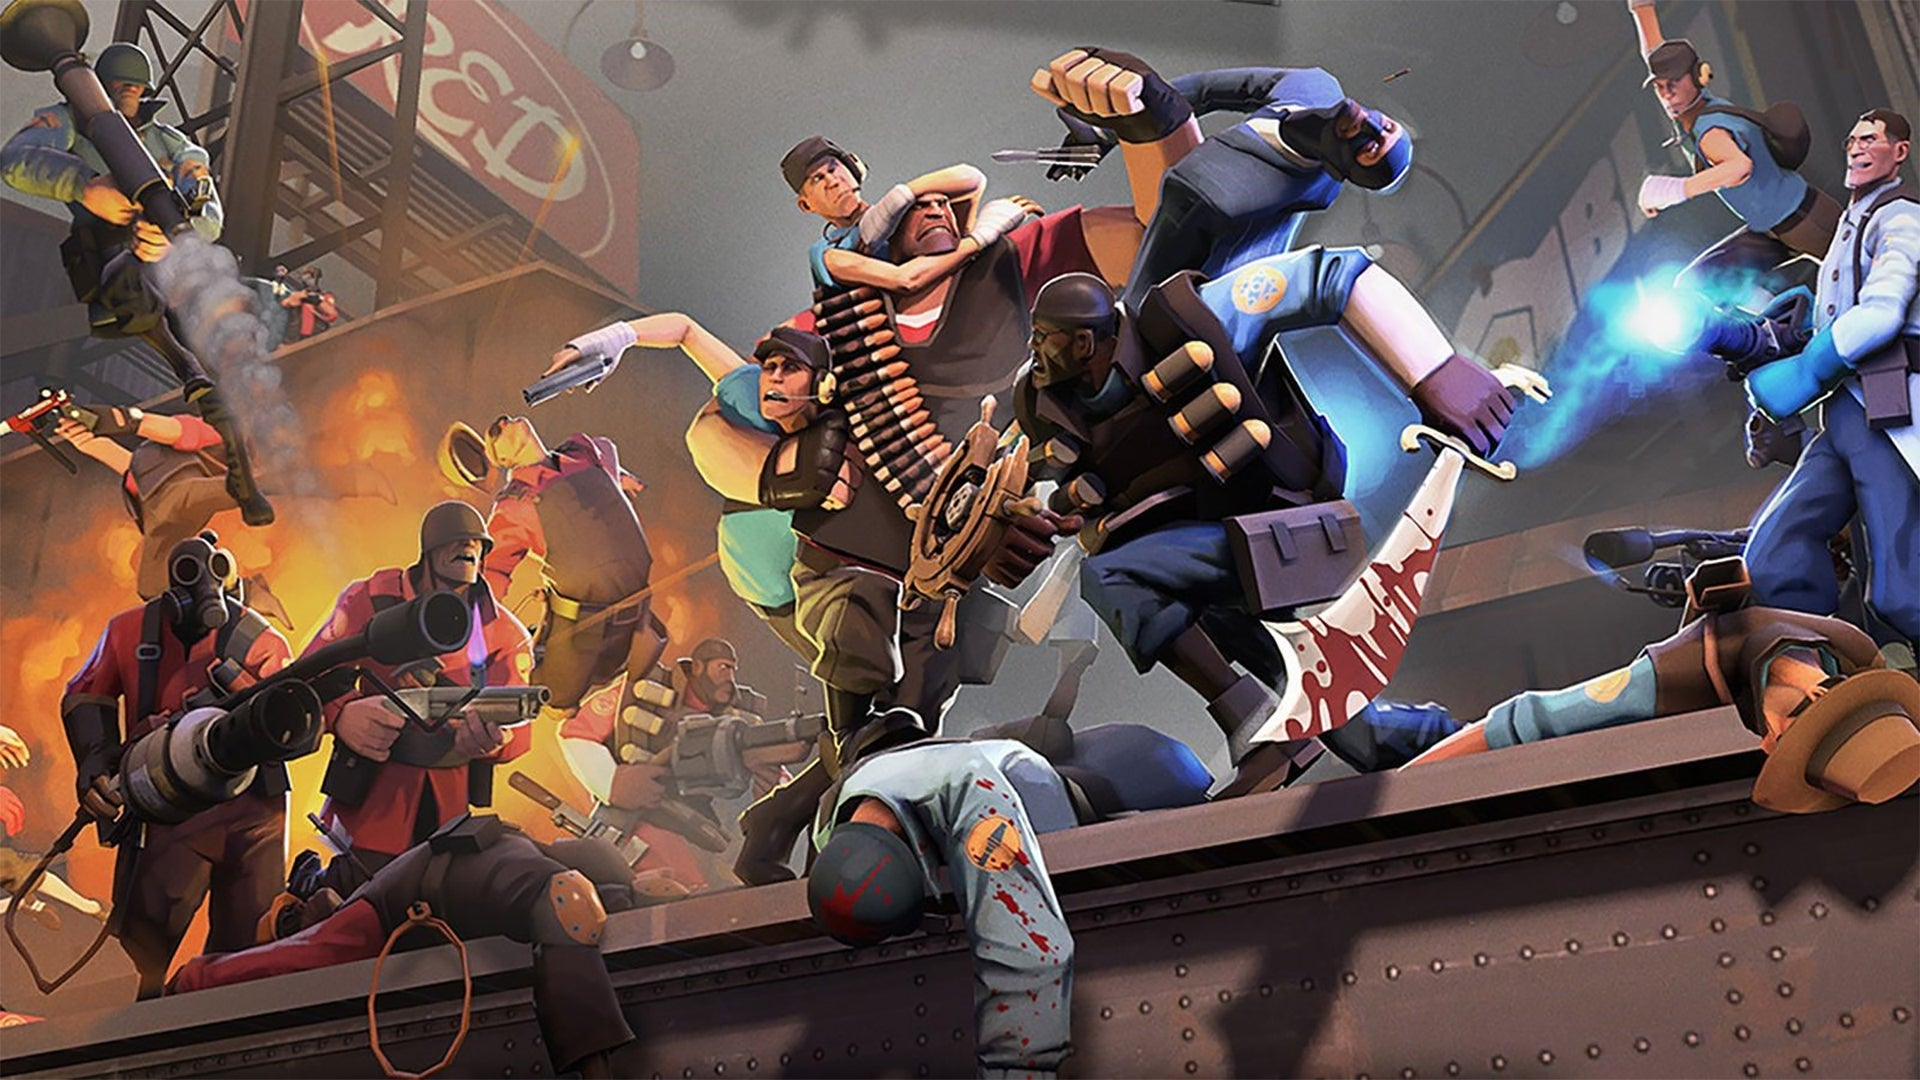 Steam Economy In Chaos After Team Fortress 2 Glitch Guarantees